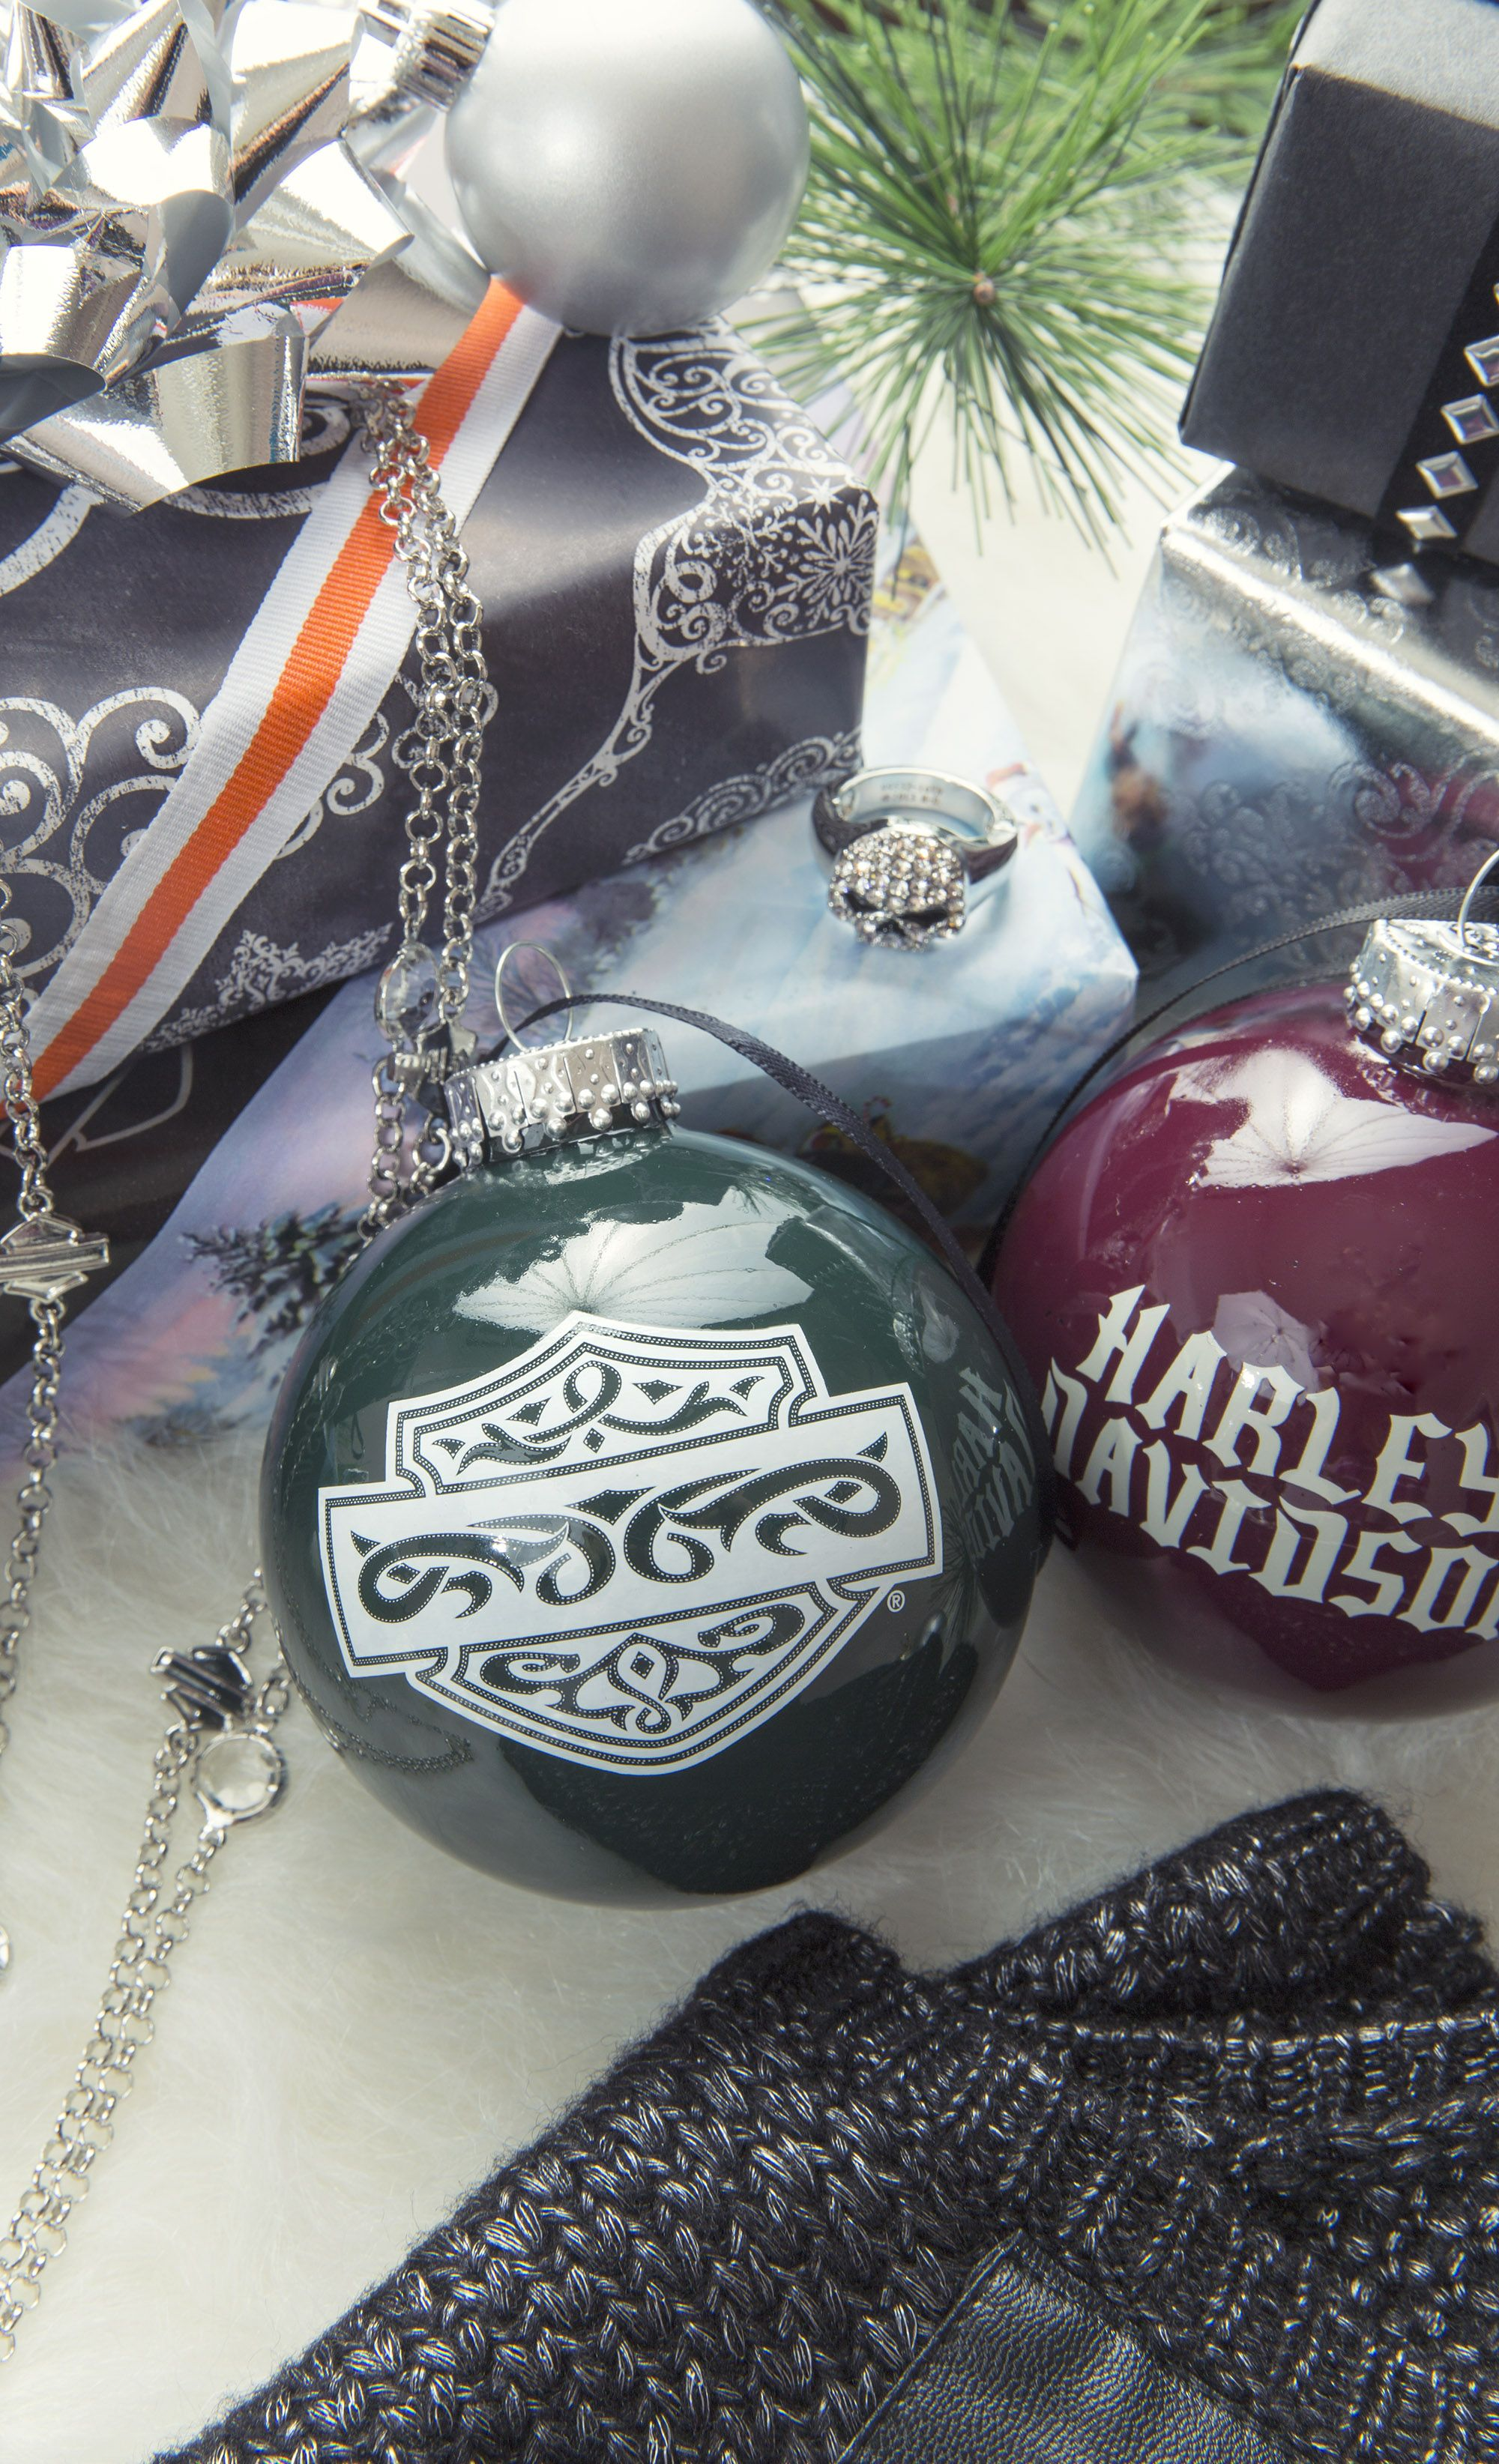 Did you know that Harley-Davidson makes Christmas ornaments? Along ...